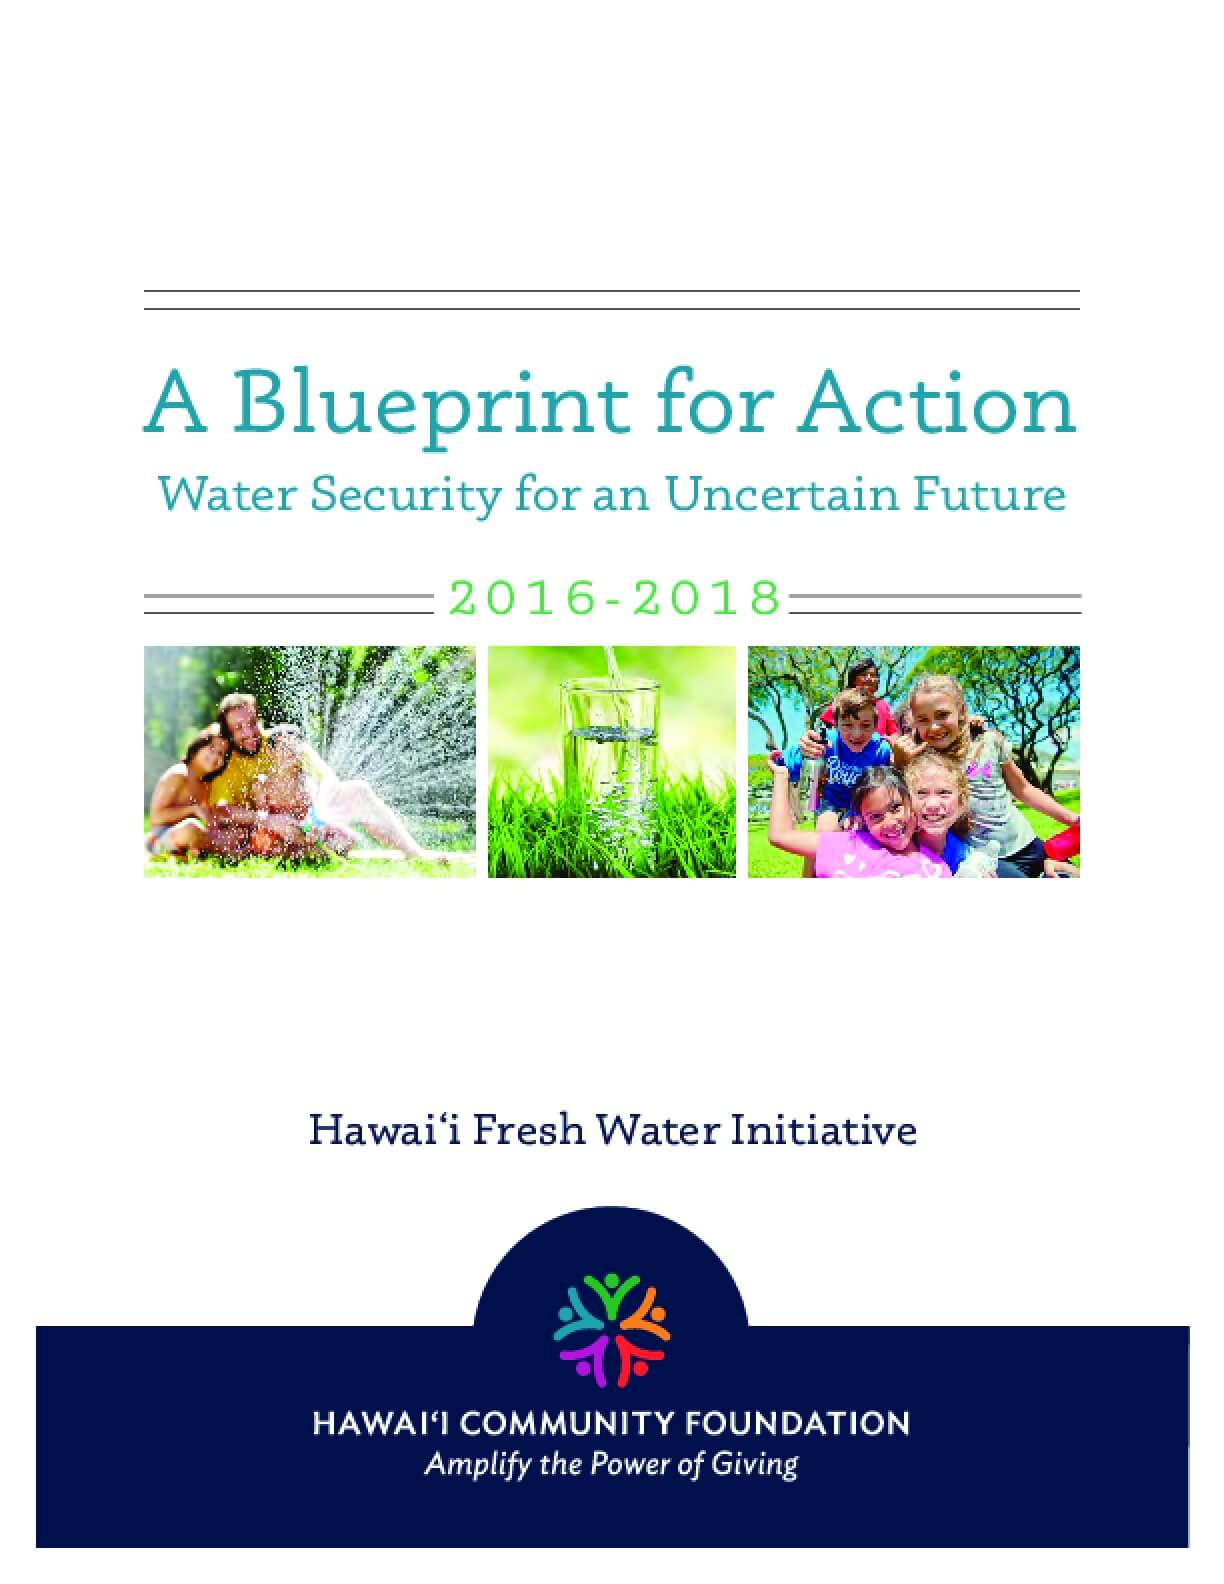 A Blueprint for Action: Water Security for an Uncertain Future